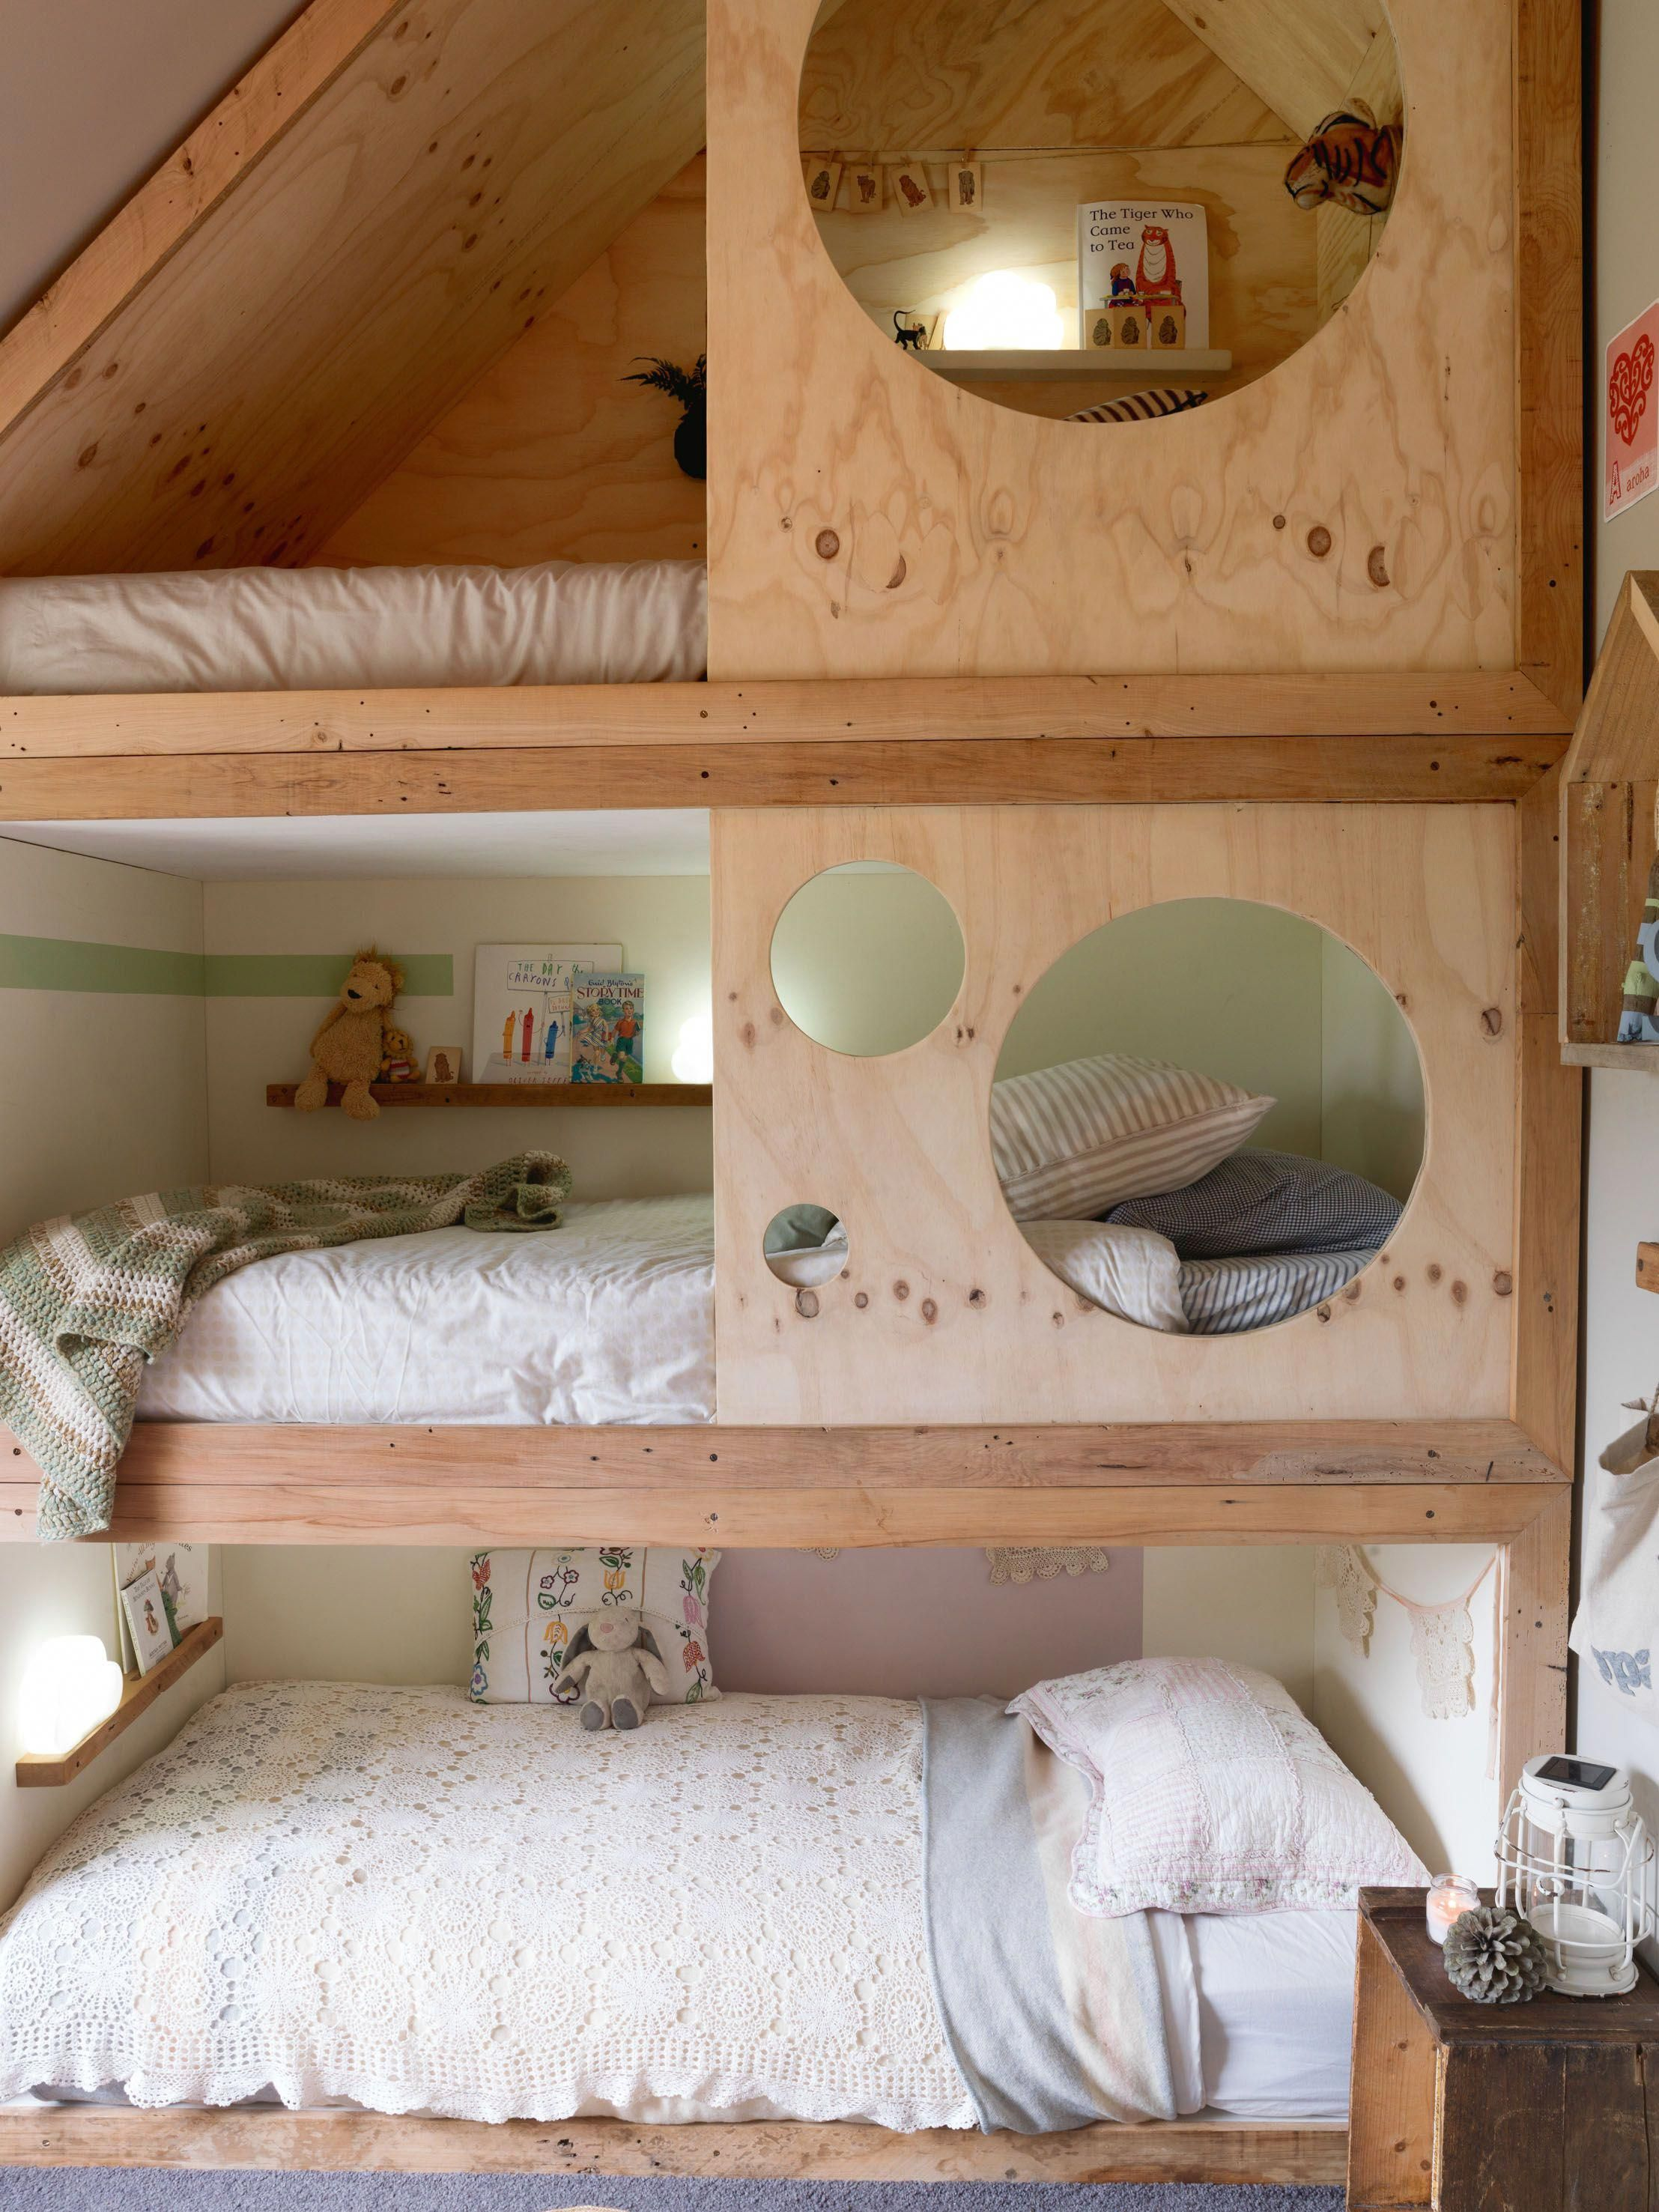 Bedroom for three kids takes out prize | Stuff.co.nz # ...